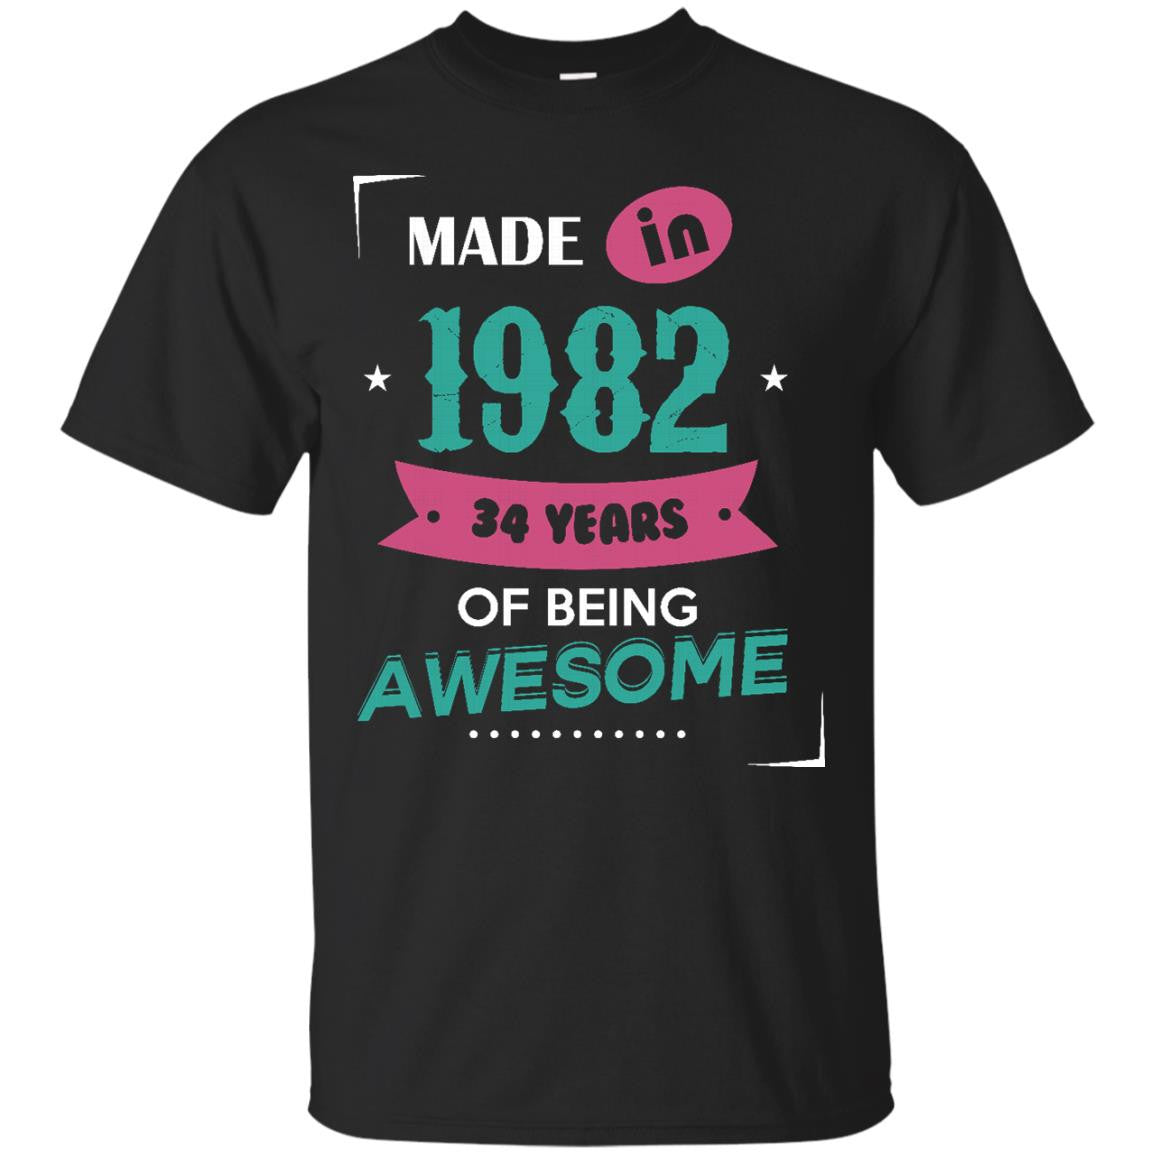 1982 Shirts Made In 1982 34 Years Of Being Awesome T-shirts Hoodies Sweatshirts